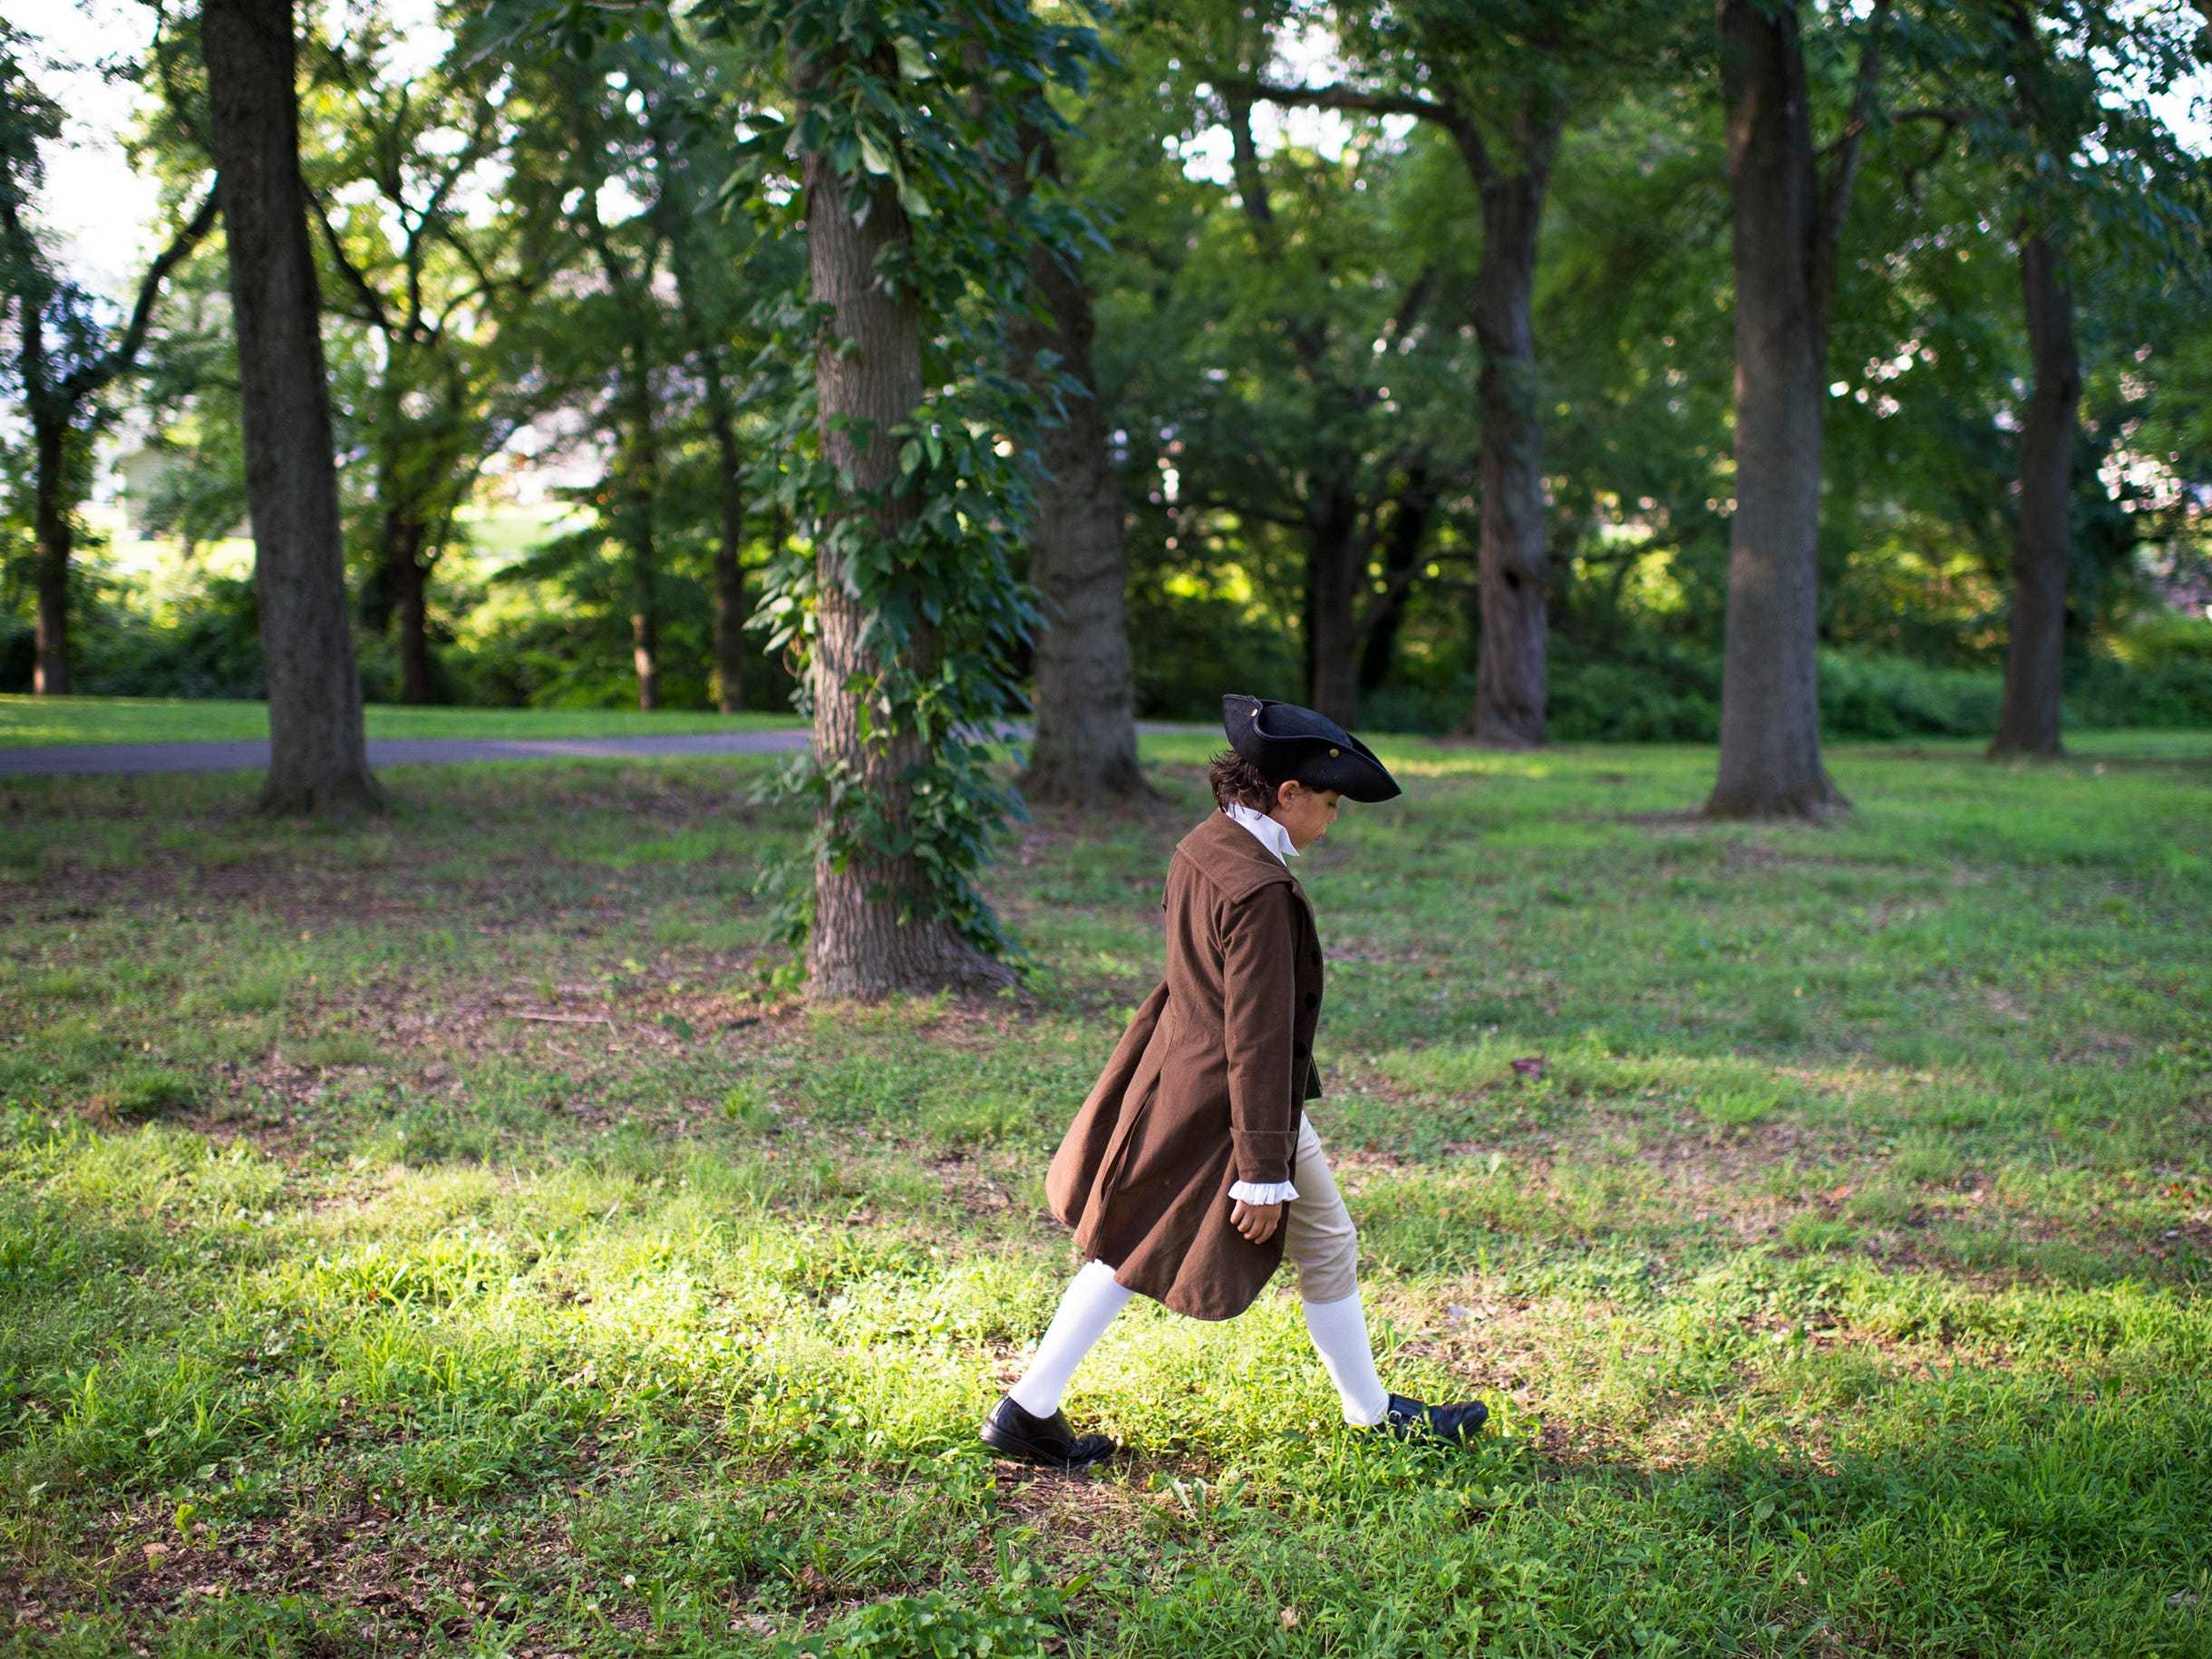 Joseph Gentile, 9, strolls Haddon Lake Park Thursday, Aug. 9, 2018 in Haddon Heights, N.J. The park was once home to a the old 'Hatcher House' which dates back to the 1700s.